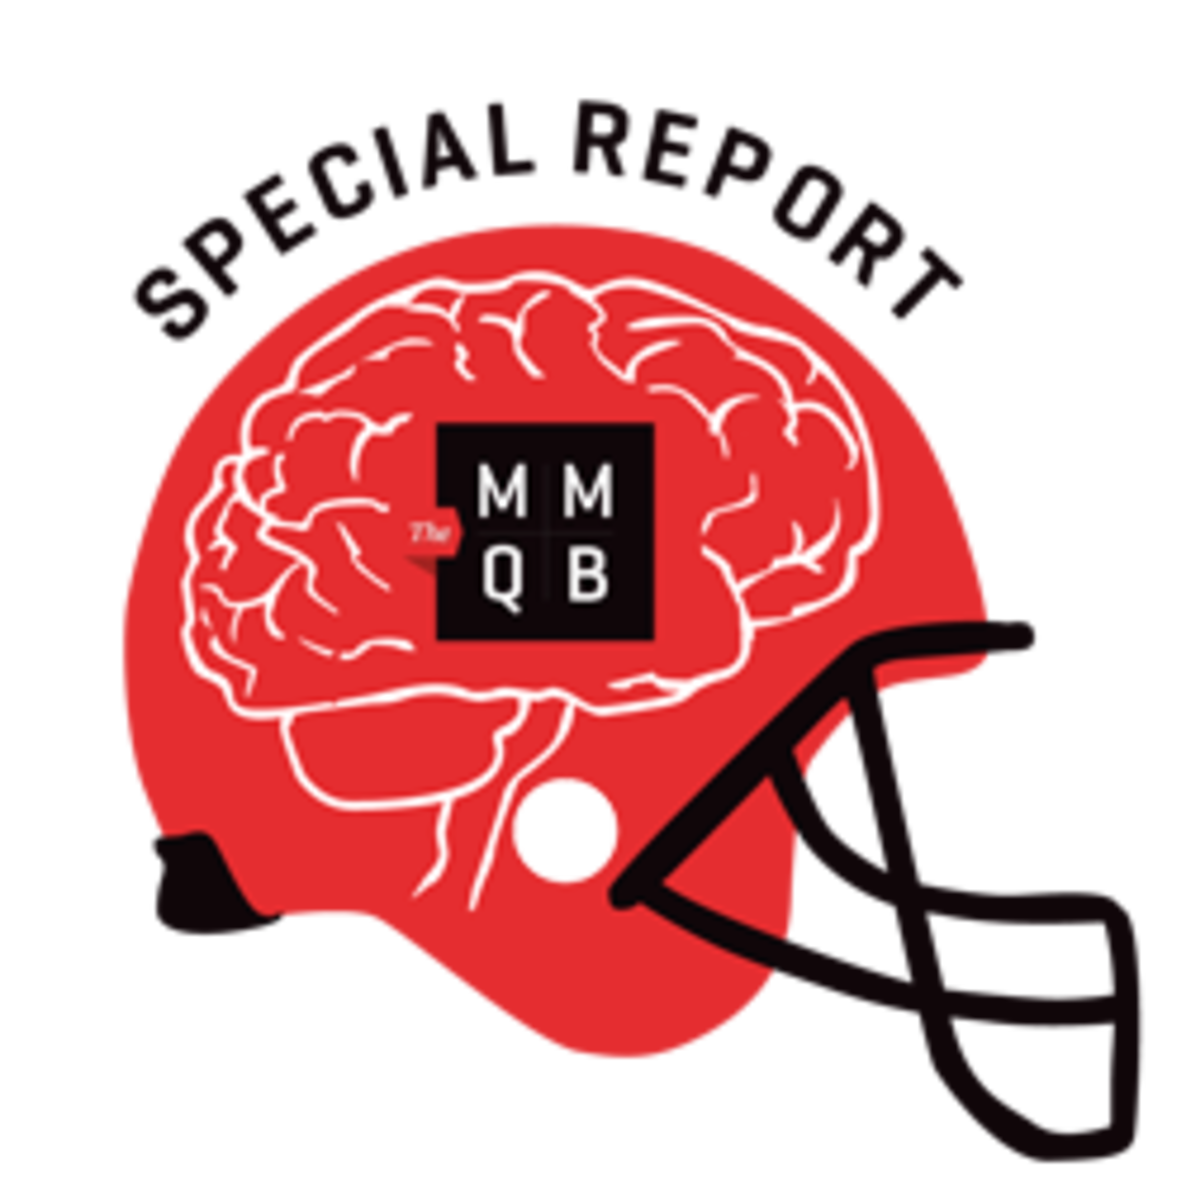 mmbq-special-report-bottom-of-story-logo